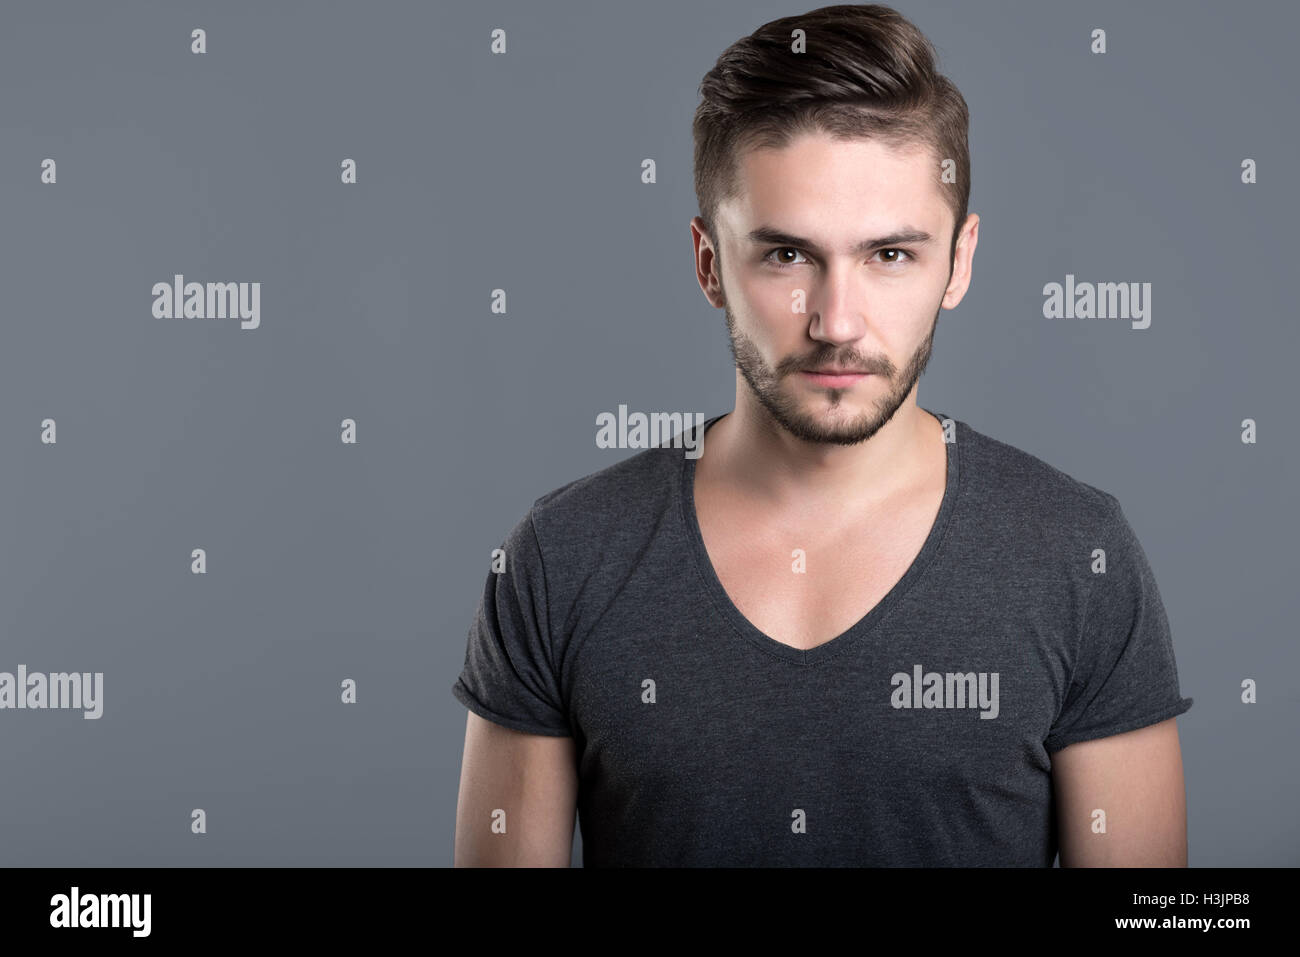 Angry bearded young man - Stock Image